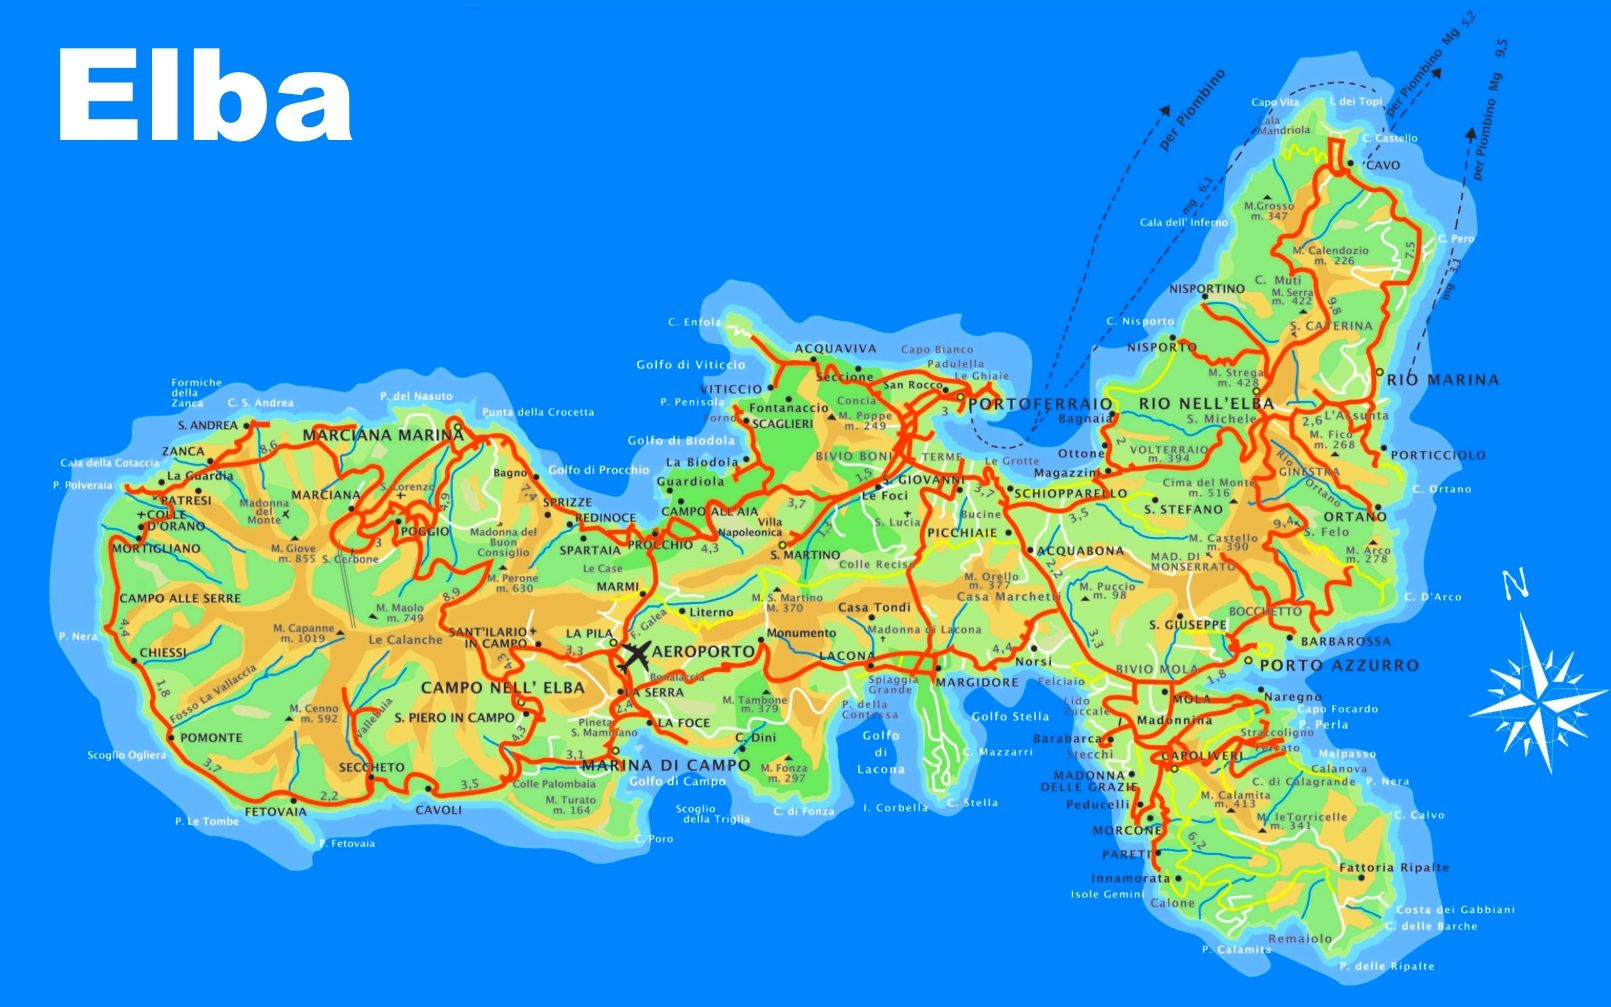 elba tourist map  elba  pinterest  tourist map elba and italy - elba tourist map